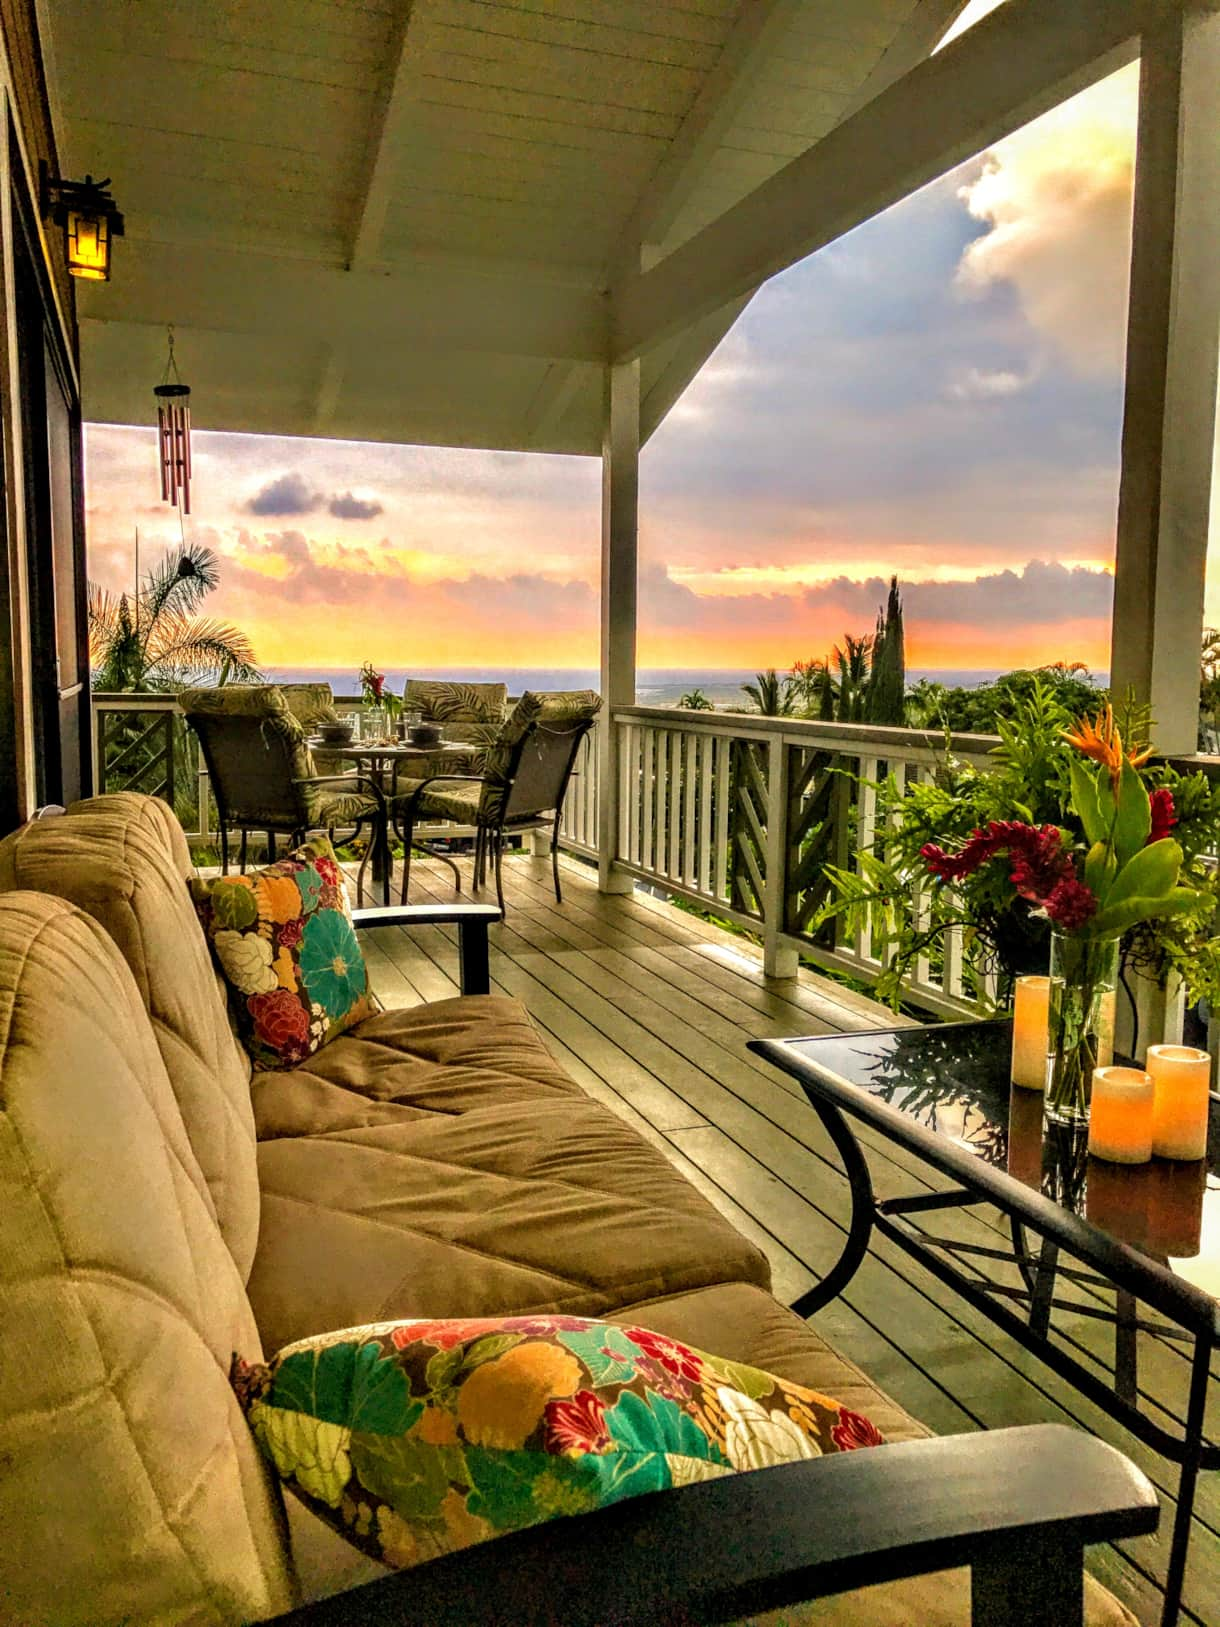 Nightly sunset views from the lanai at the Hale Makamaka.